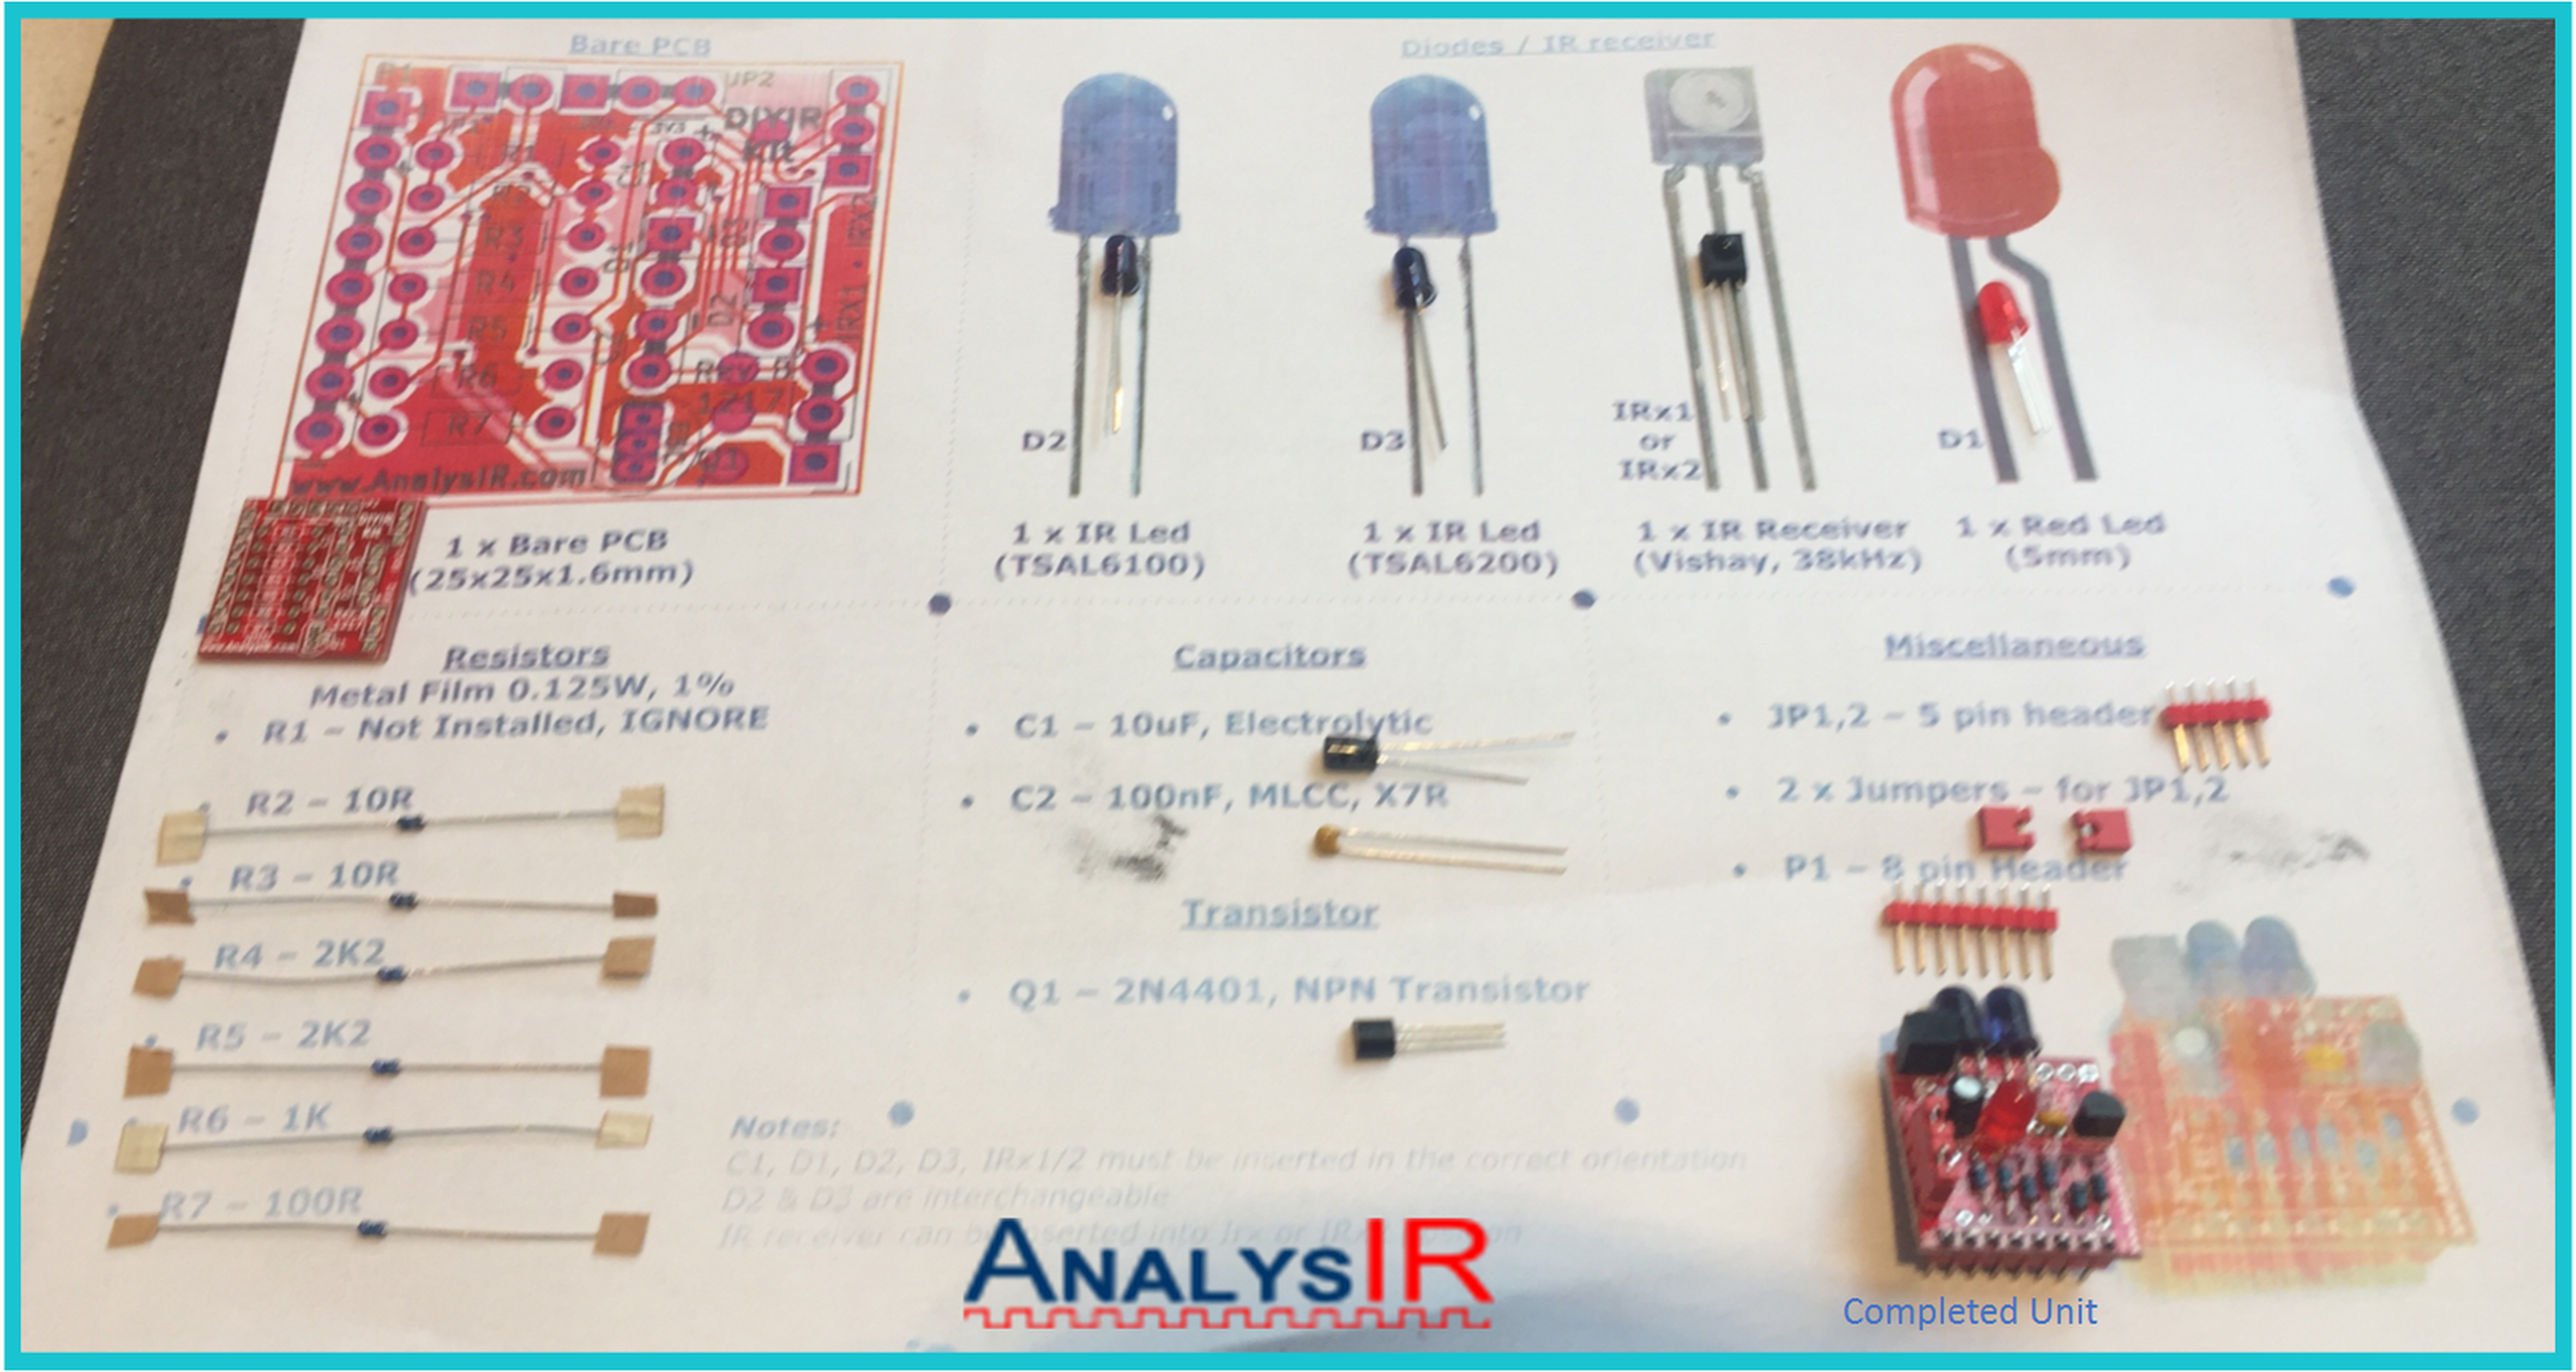 Diy Ir Soldering Kit For Infrared Remote Control From Analysir Transmitter Circuit Remotecontrolcircuit 4